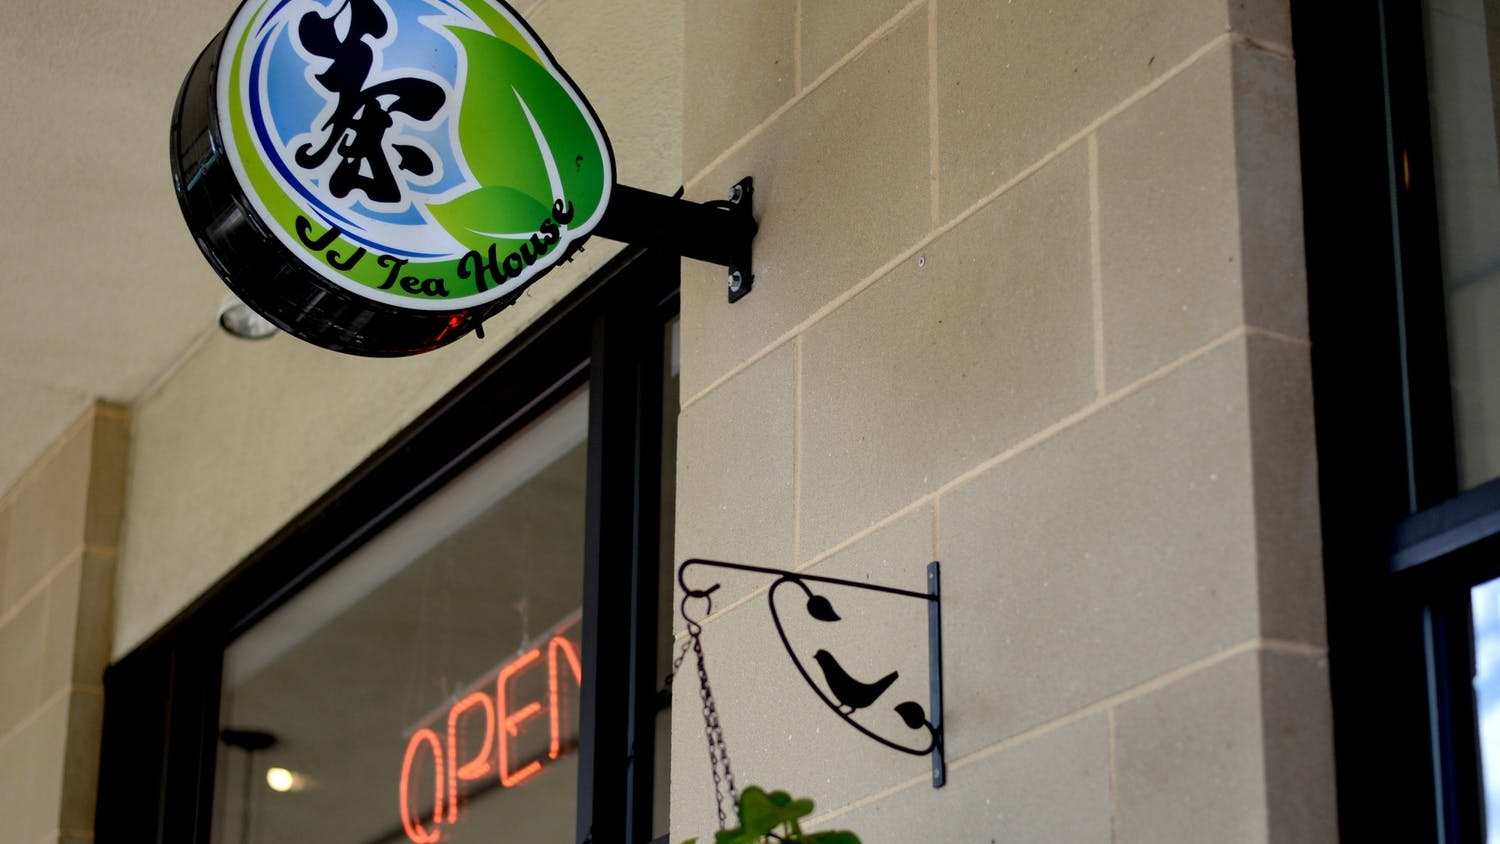 A sign on the front entrance of JJ Tea House welcomes customers.